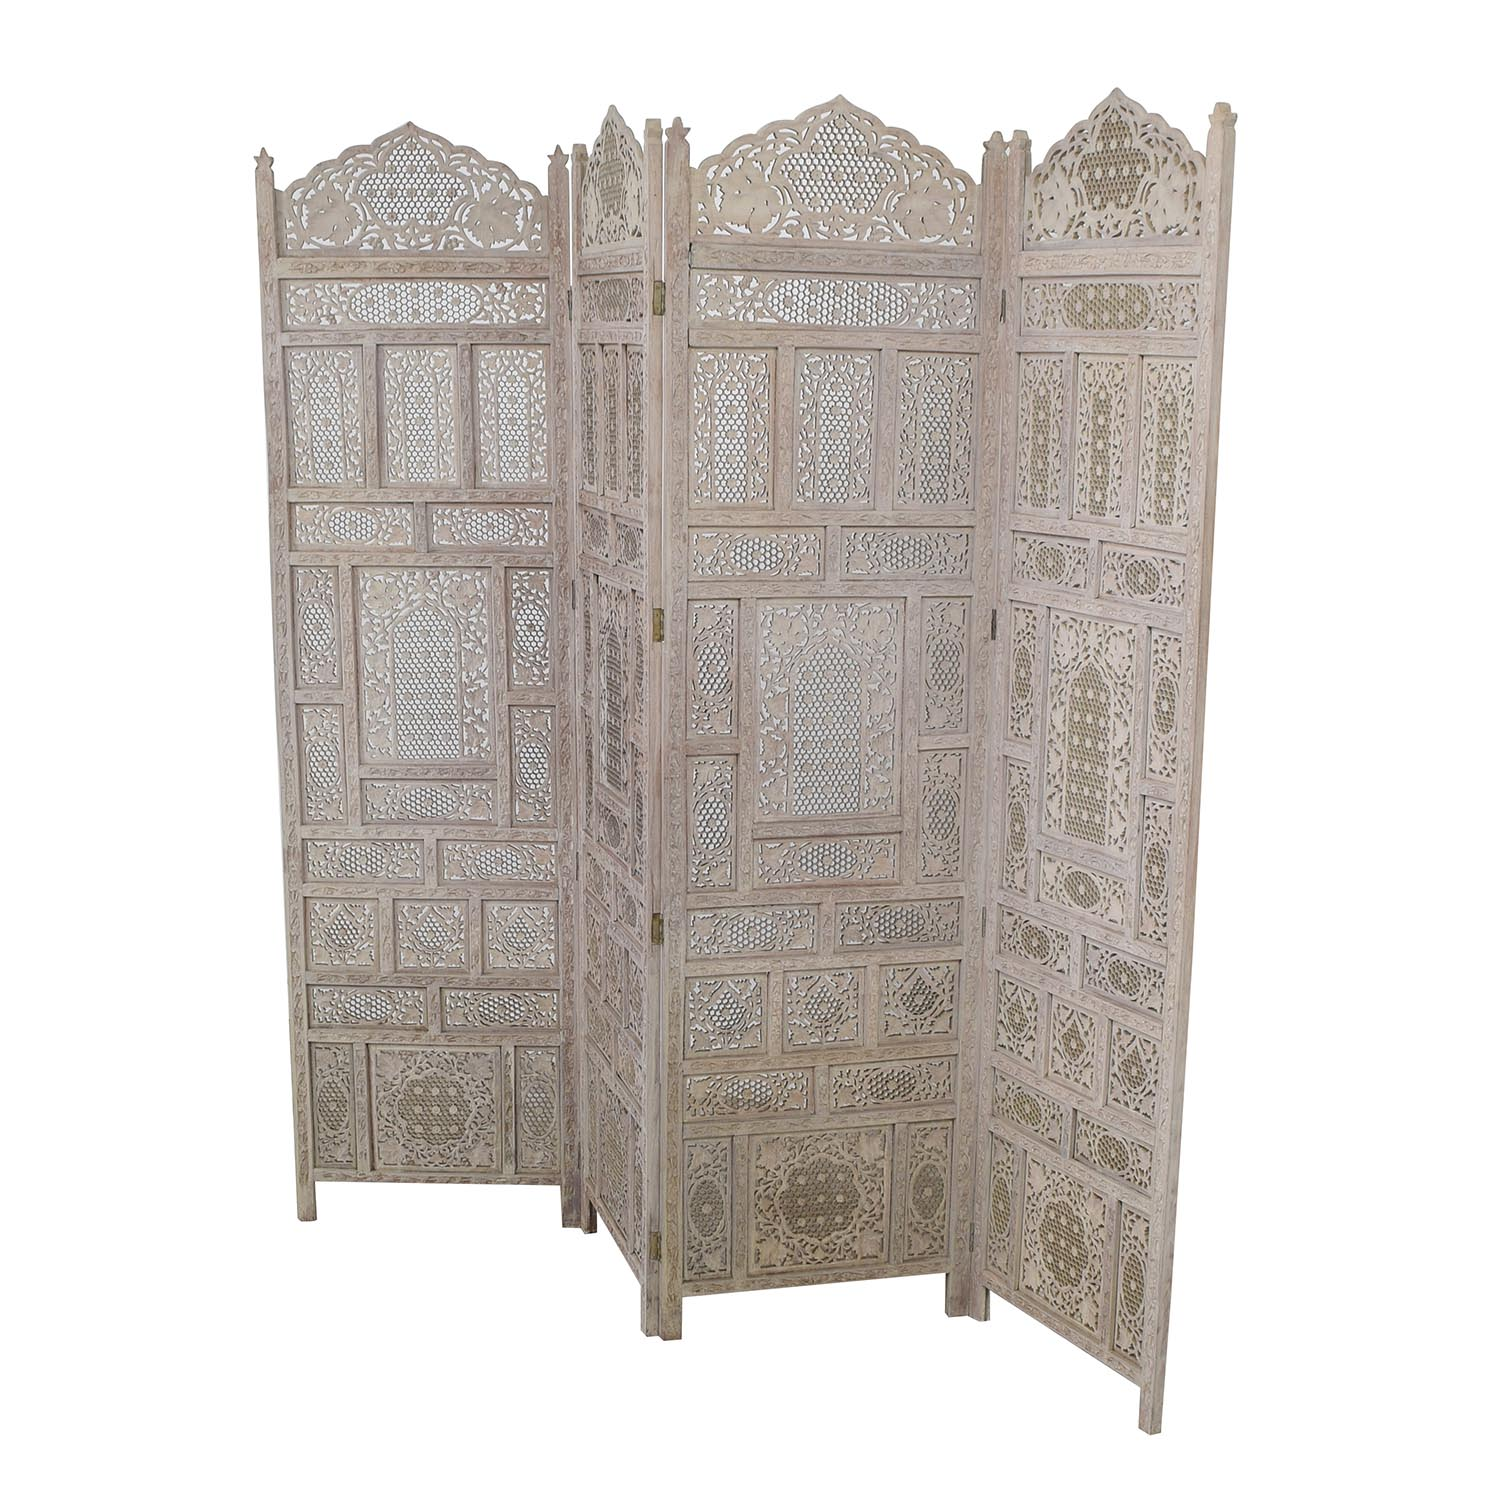 Distressed Light Grey Wood Room Divider dimensions